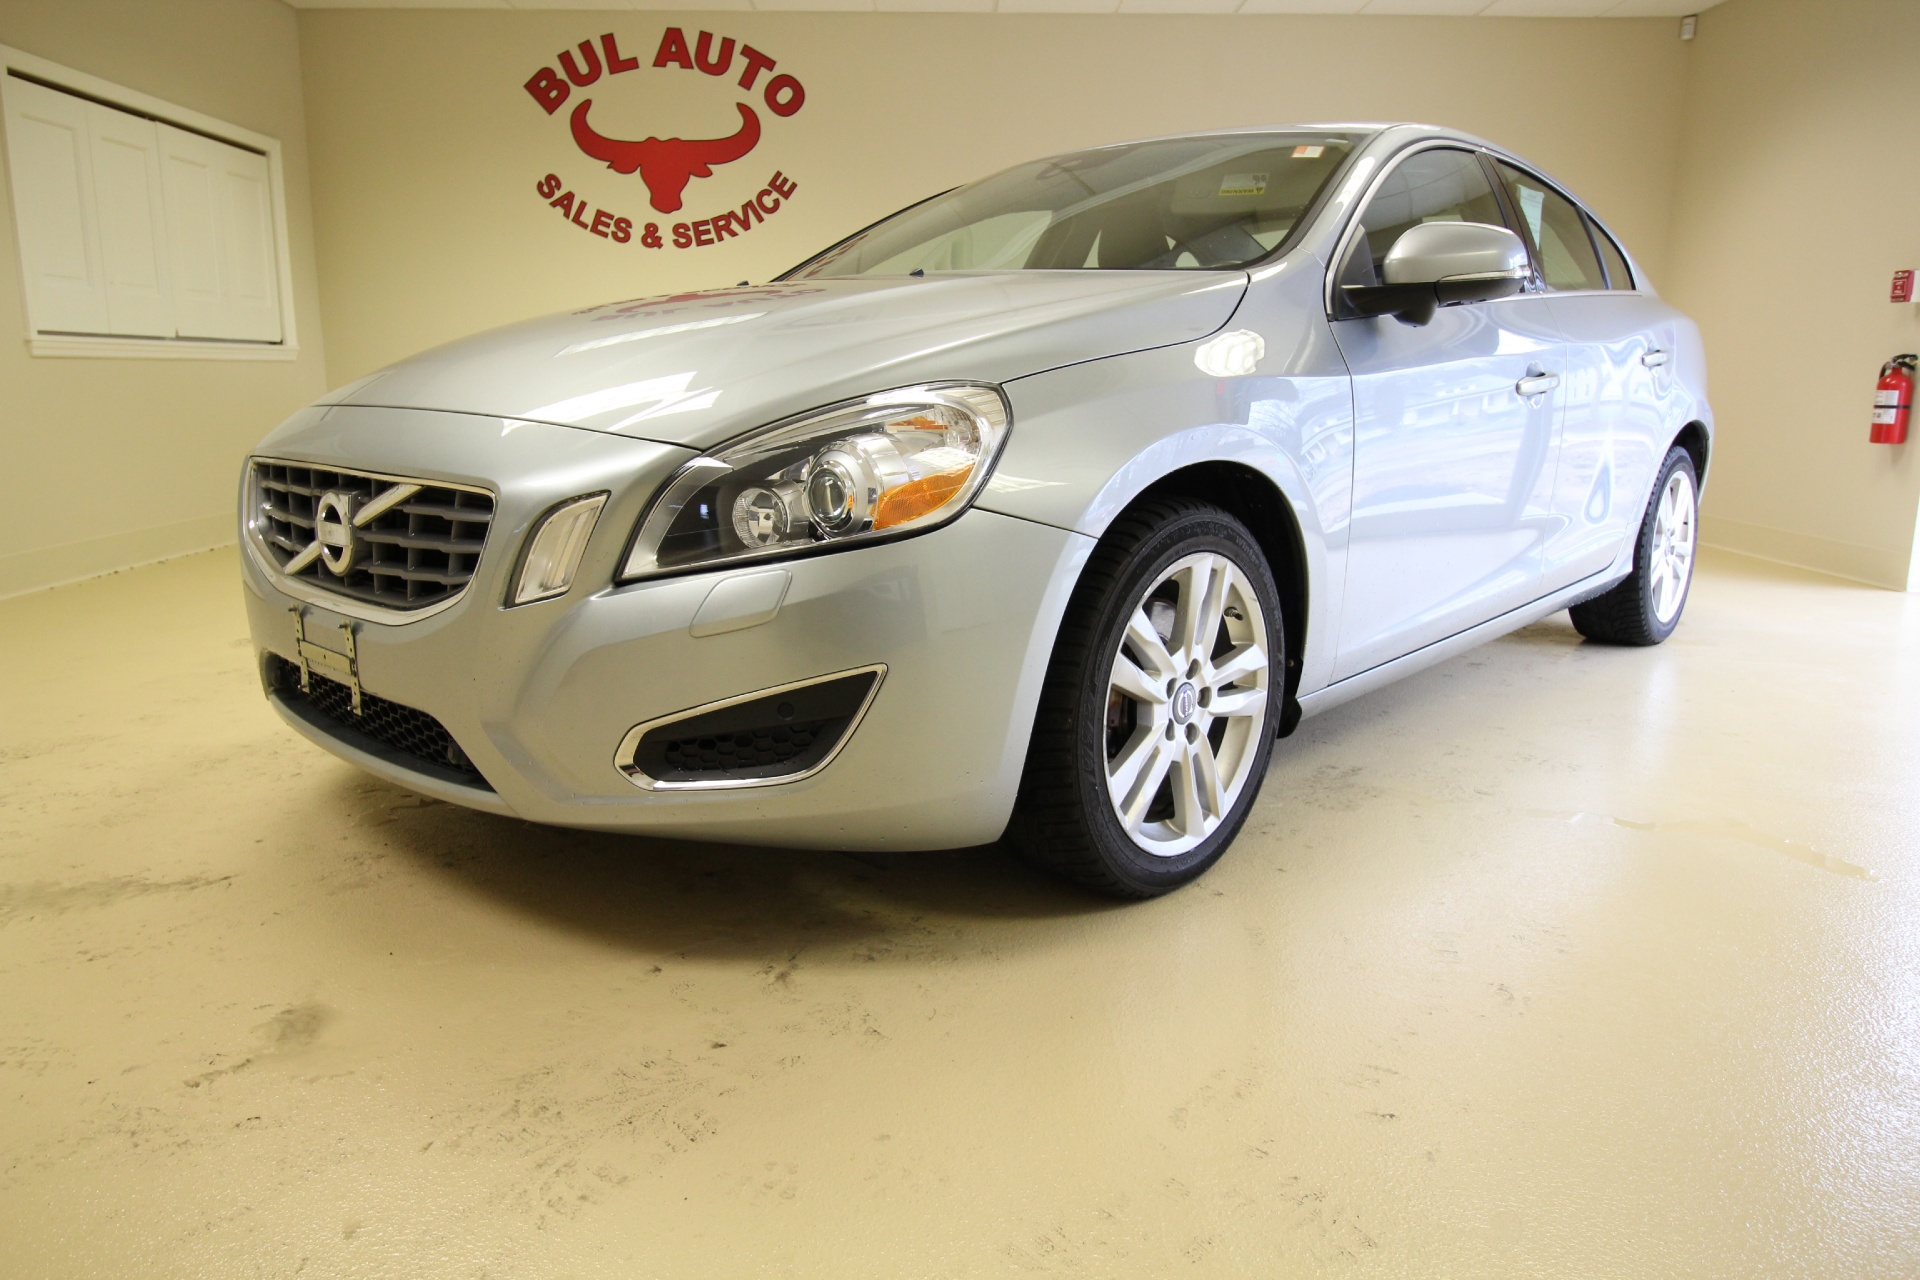 Used Cars with Sunroof for Sale Near Me Best Of 2013 Volvo S60 T5 Premier Plus Leather Heated Seats Sunroof and More